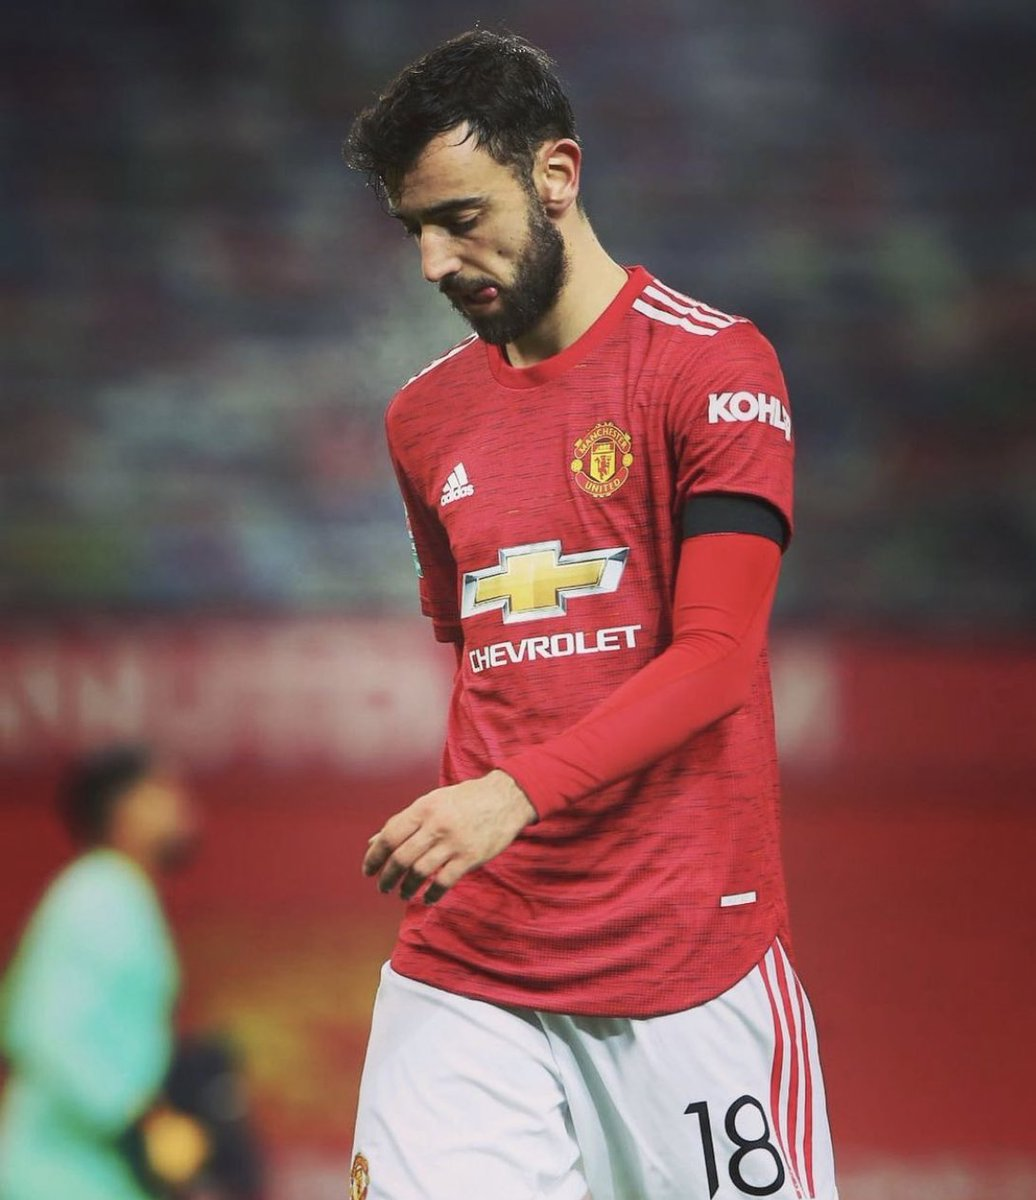 I'm very sad and disappointed to once again don't reach a final. We have a lot to fight yet but we have to learn and understand that we can't make the same mistakes anymore. We need to make an effort to further improve and be able to fight for trophies!